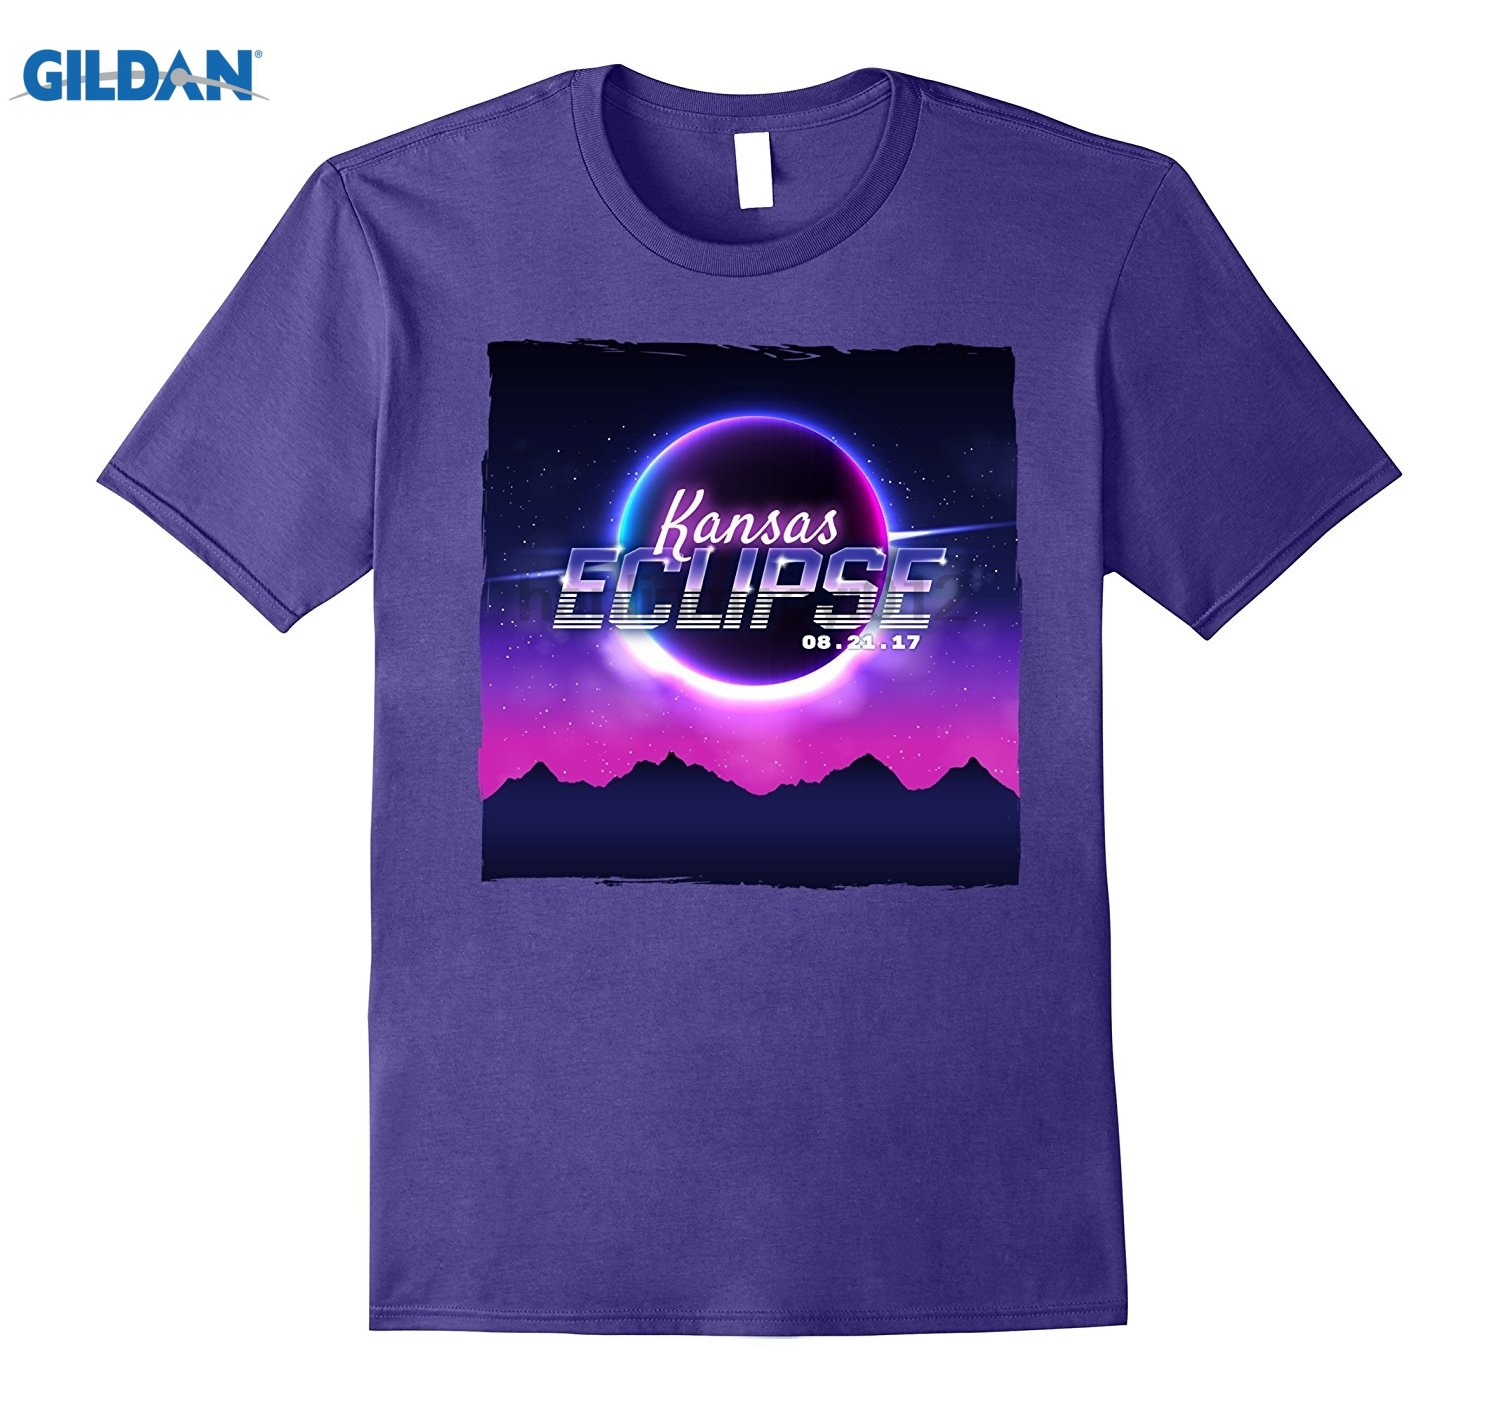 GILDAN Vintage Kansas Solar Eclipse 2017 T-shirt Hot Womens T-shirt